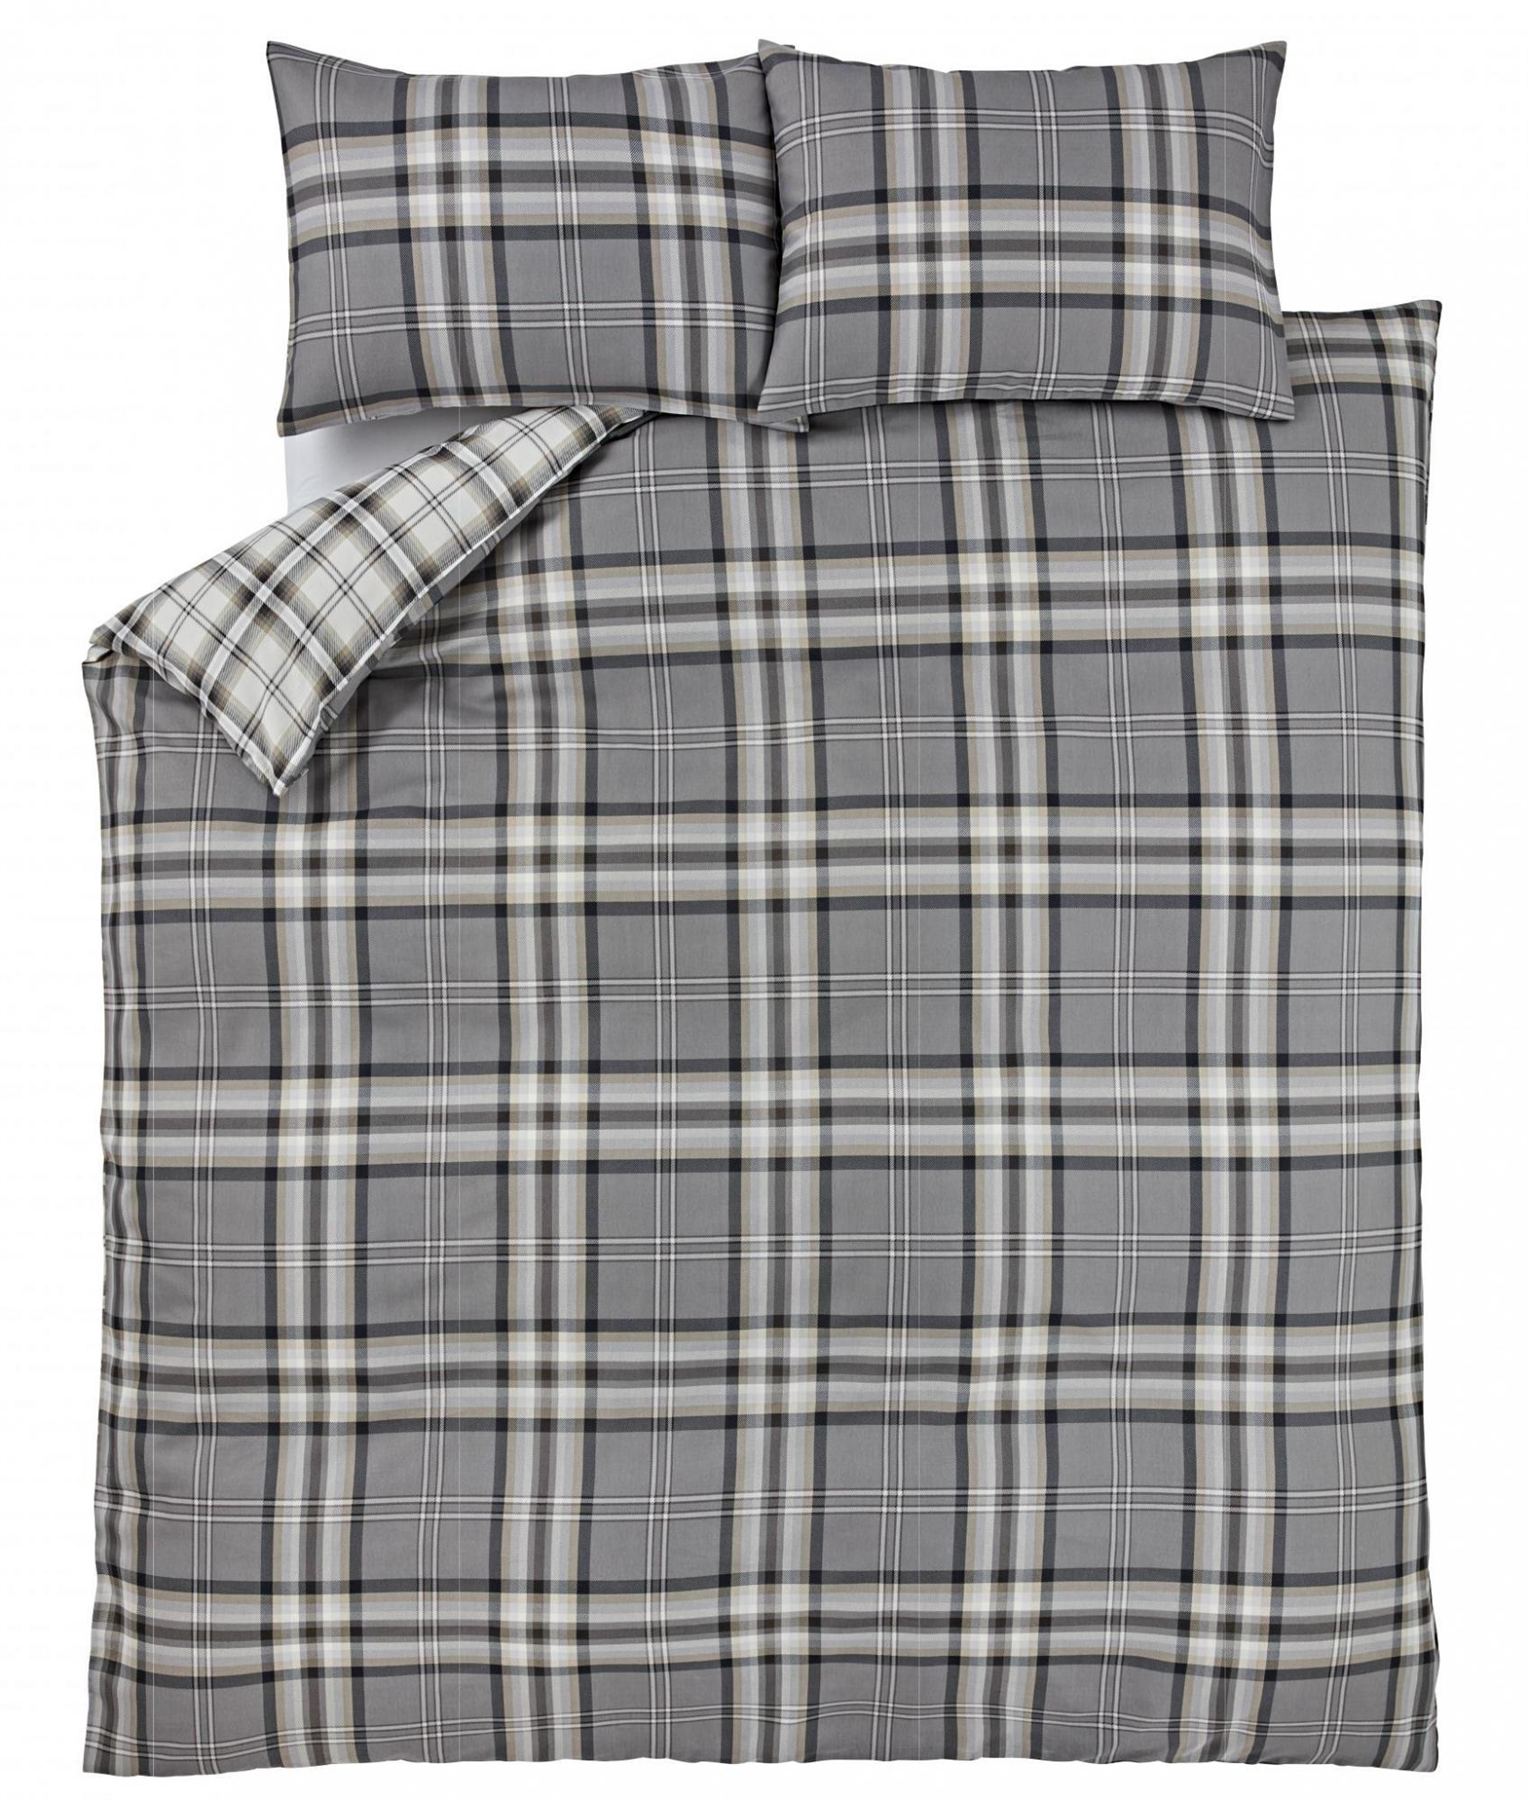 Catherine-Lansfield-Duvet-Set-Reversible-Check-Bedding-Charcoal-Pillows-Curtain thumbnail 17